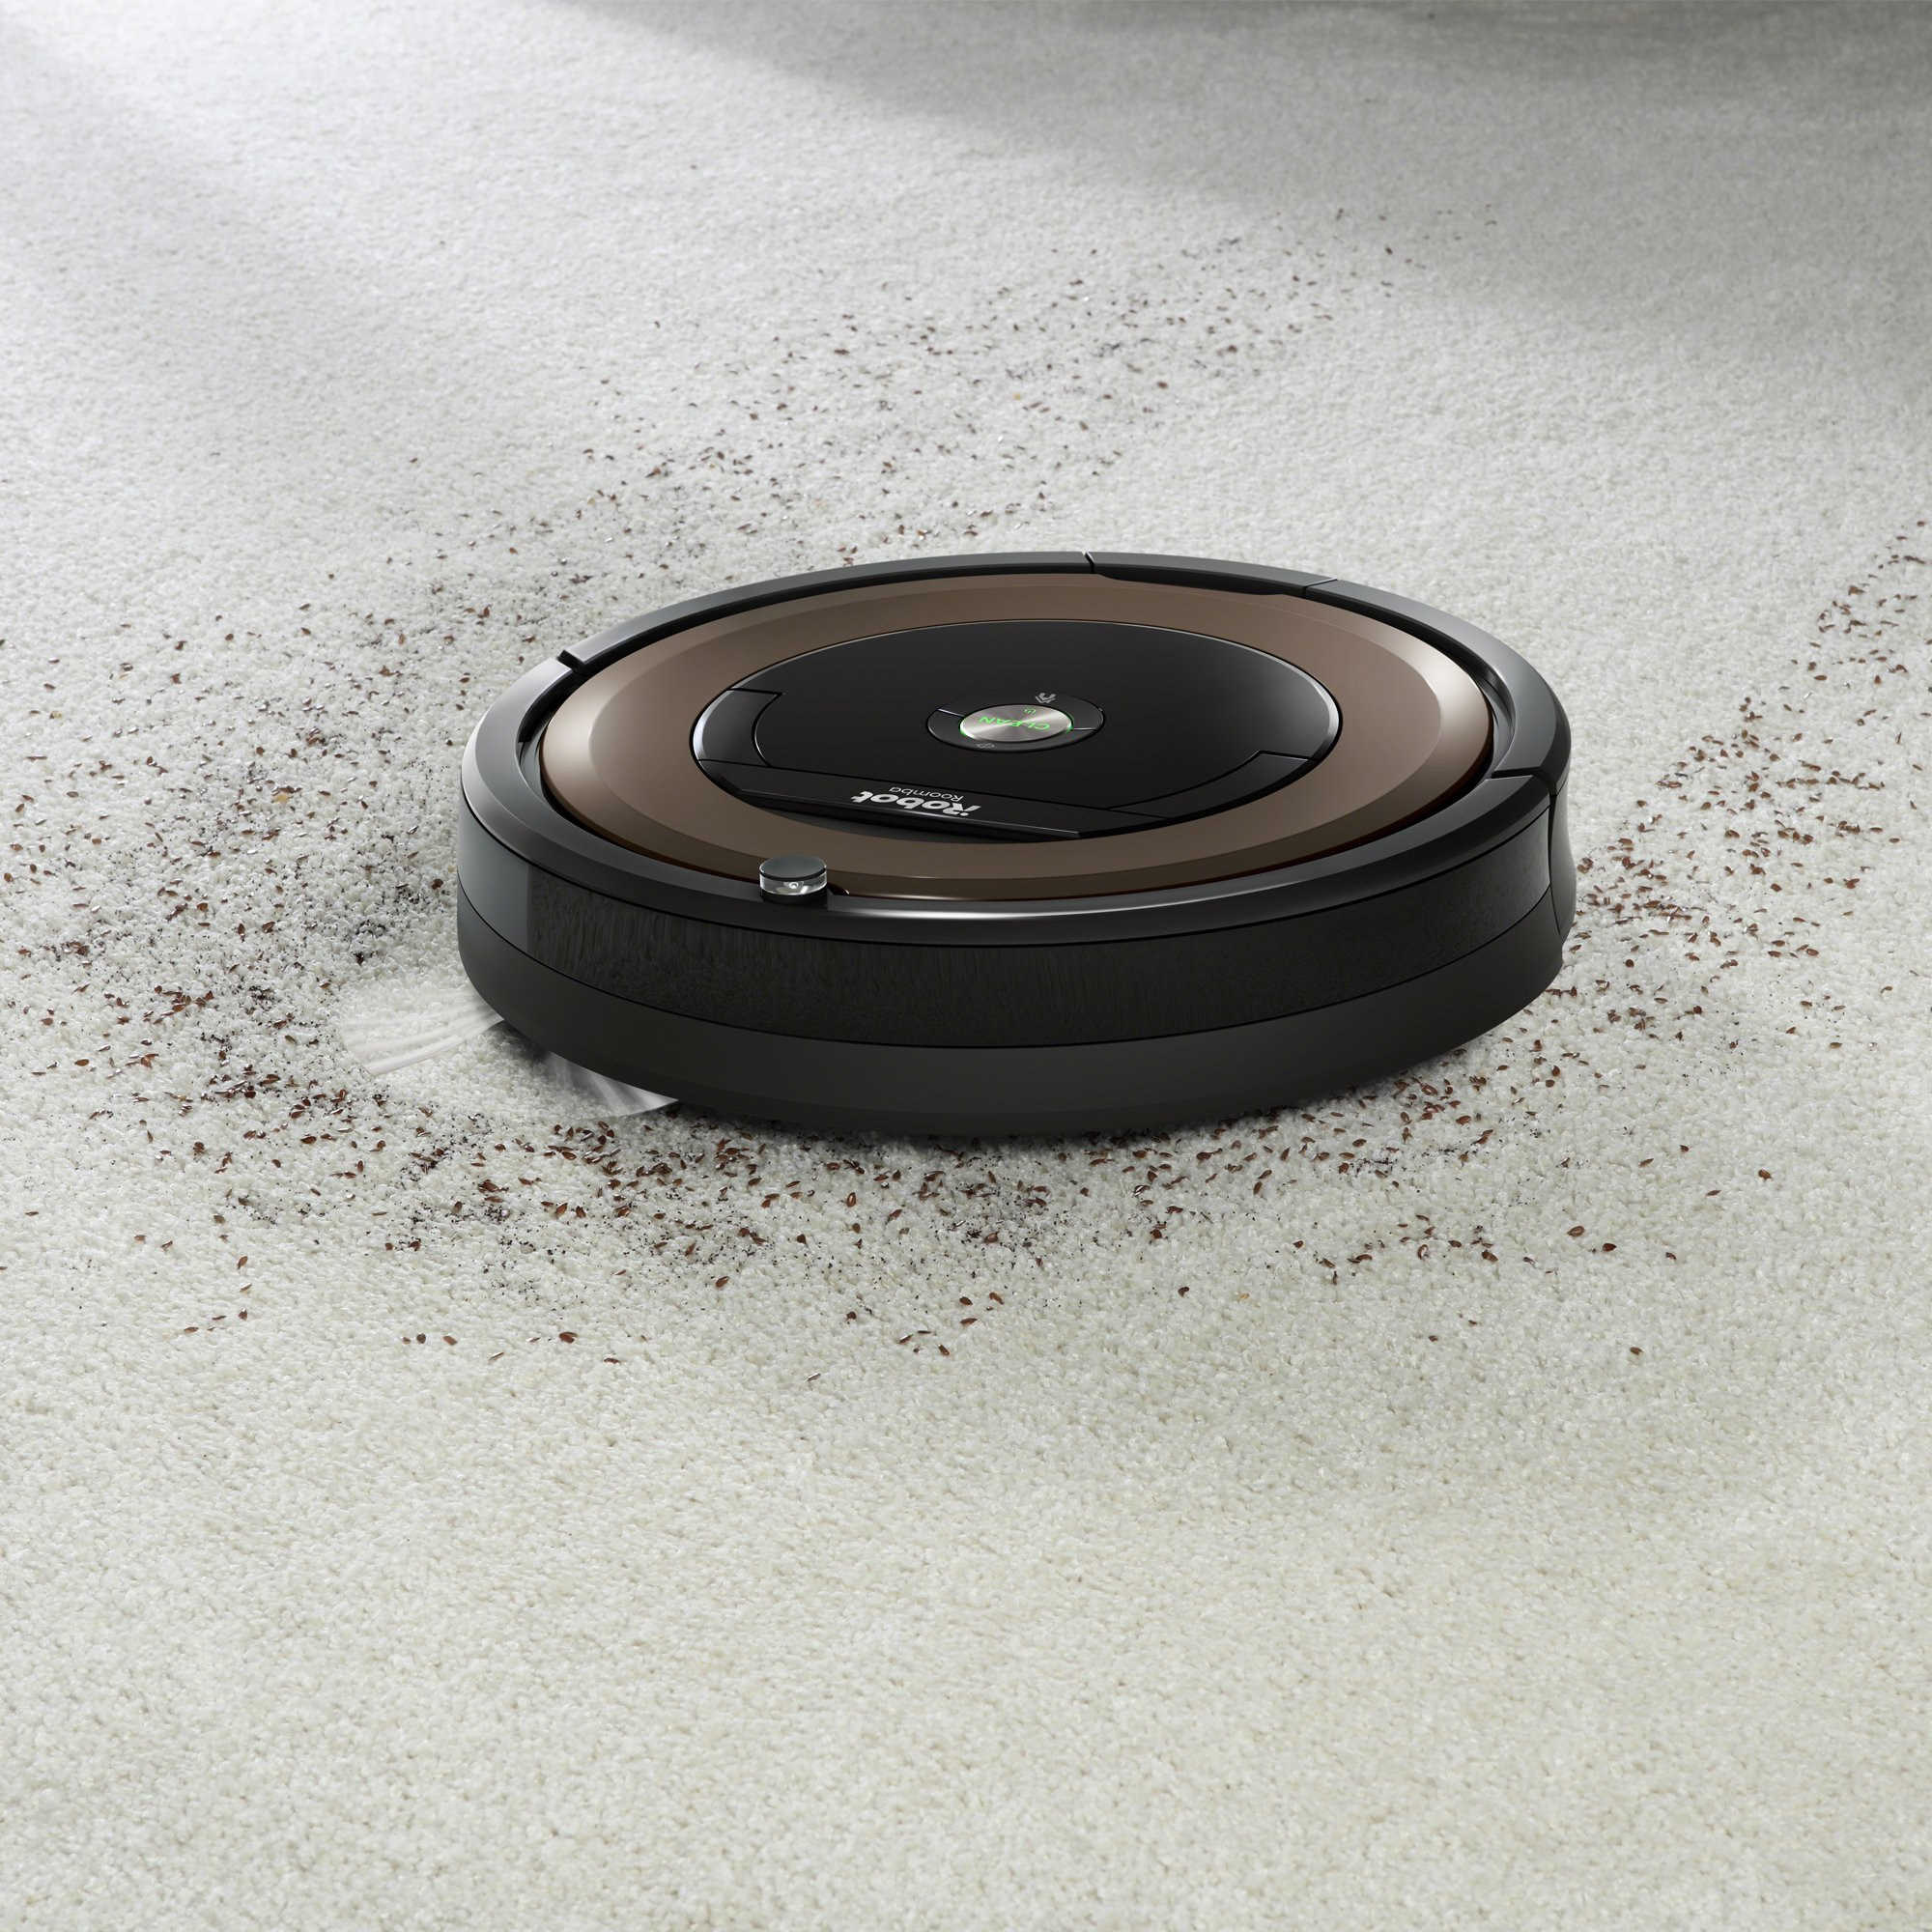 iRobot Roomba 890 Robot Vacuum with Wi-Fi Connectivity by iRobot (Image #5)